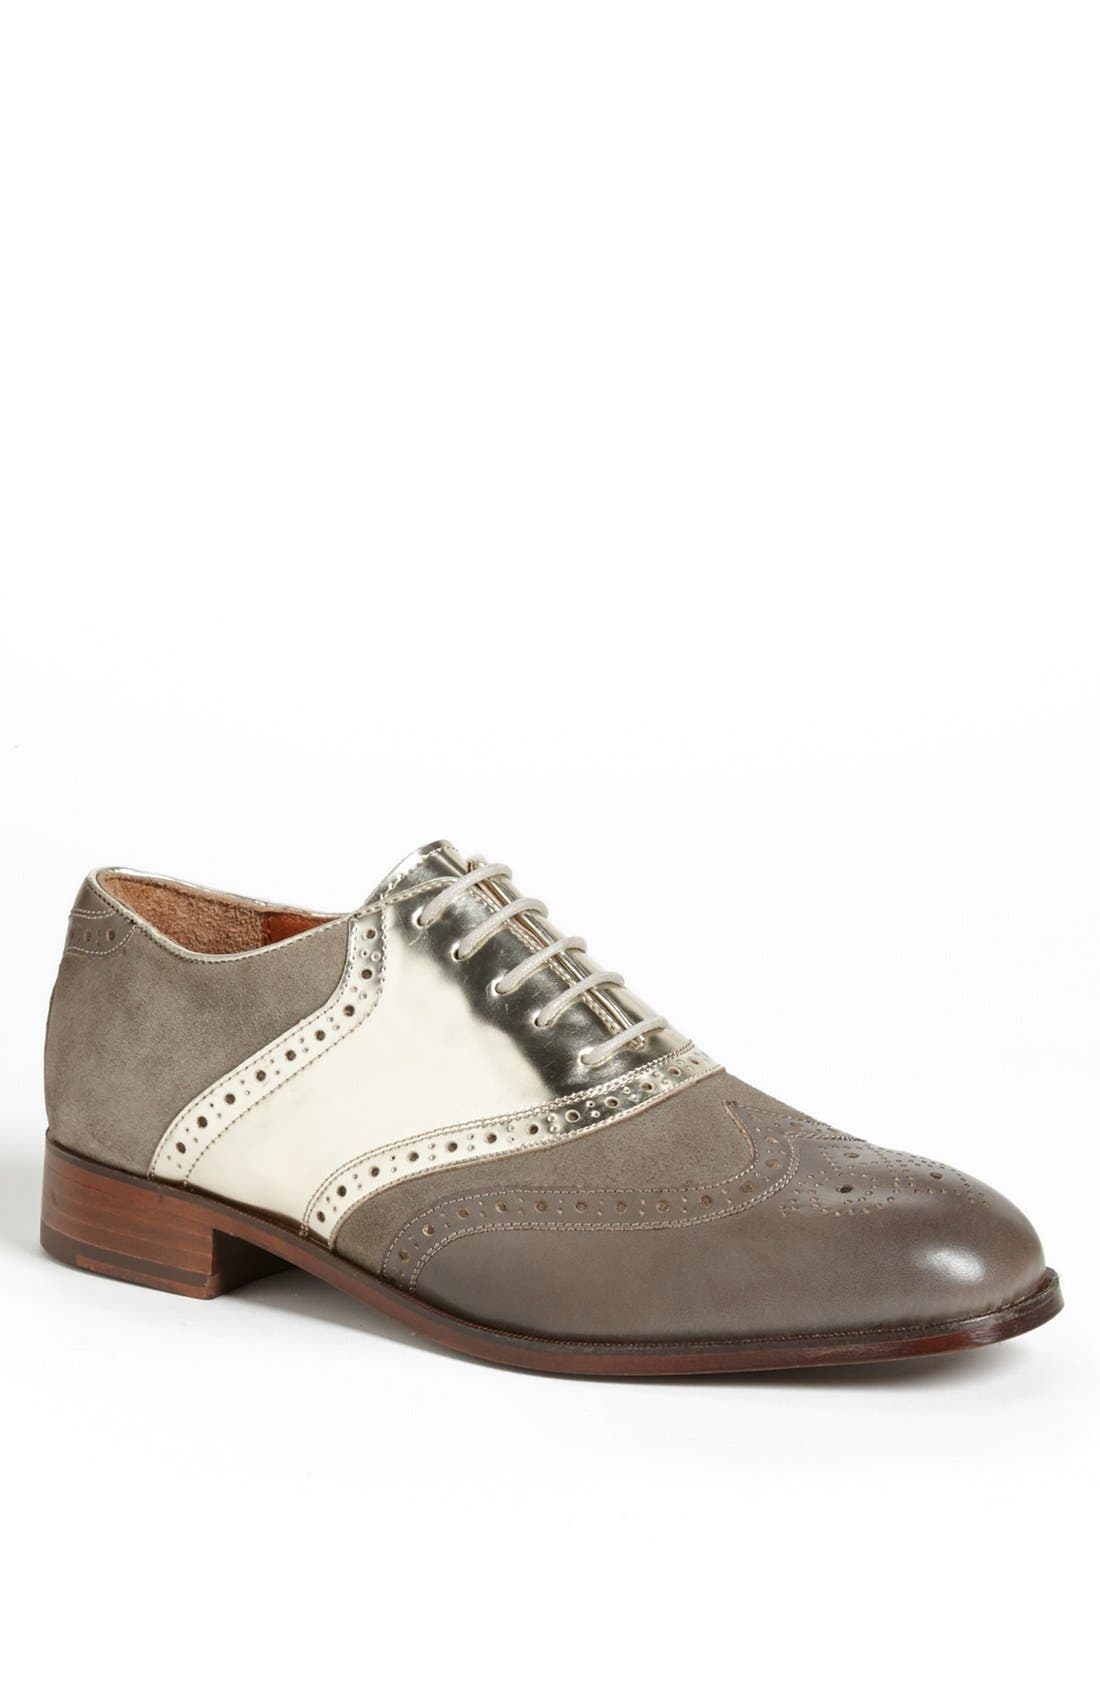 Alternate Image 1 Selected - Florsheim by Duckie Brown 'Wing' Saddle Shoe